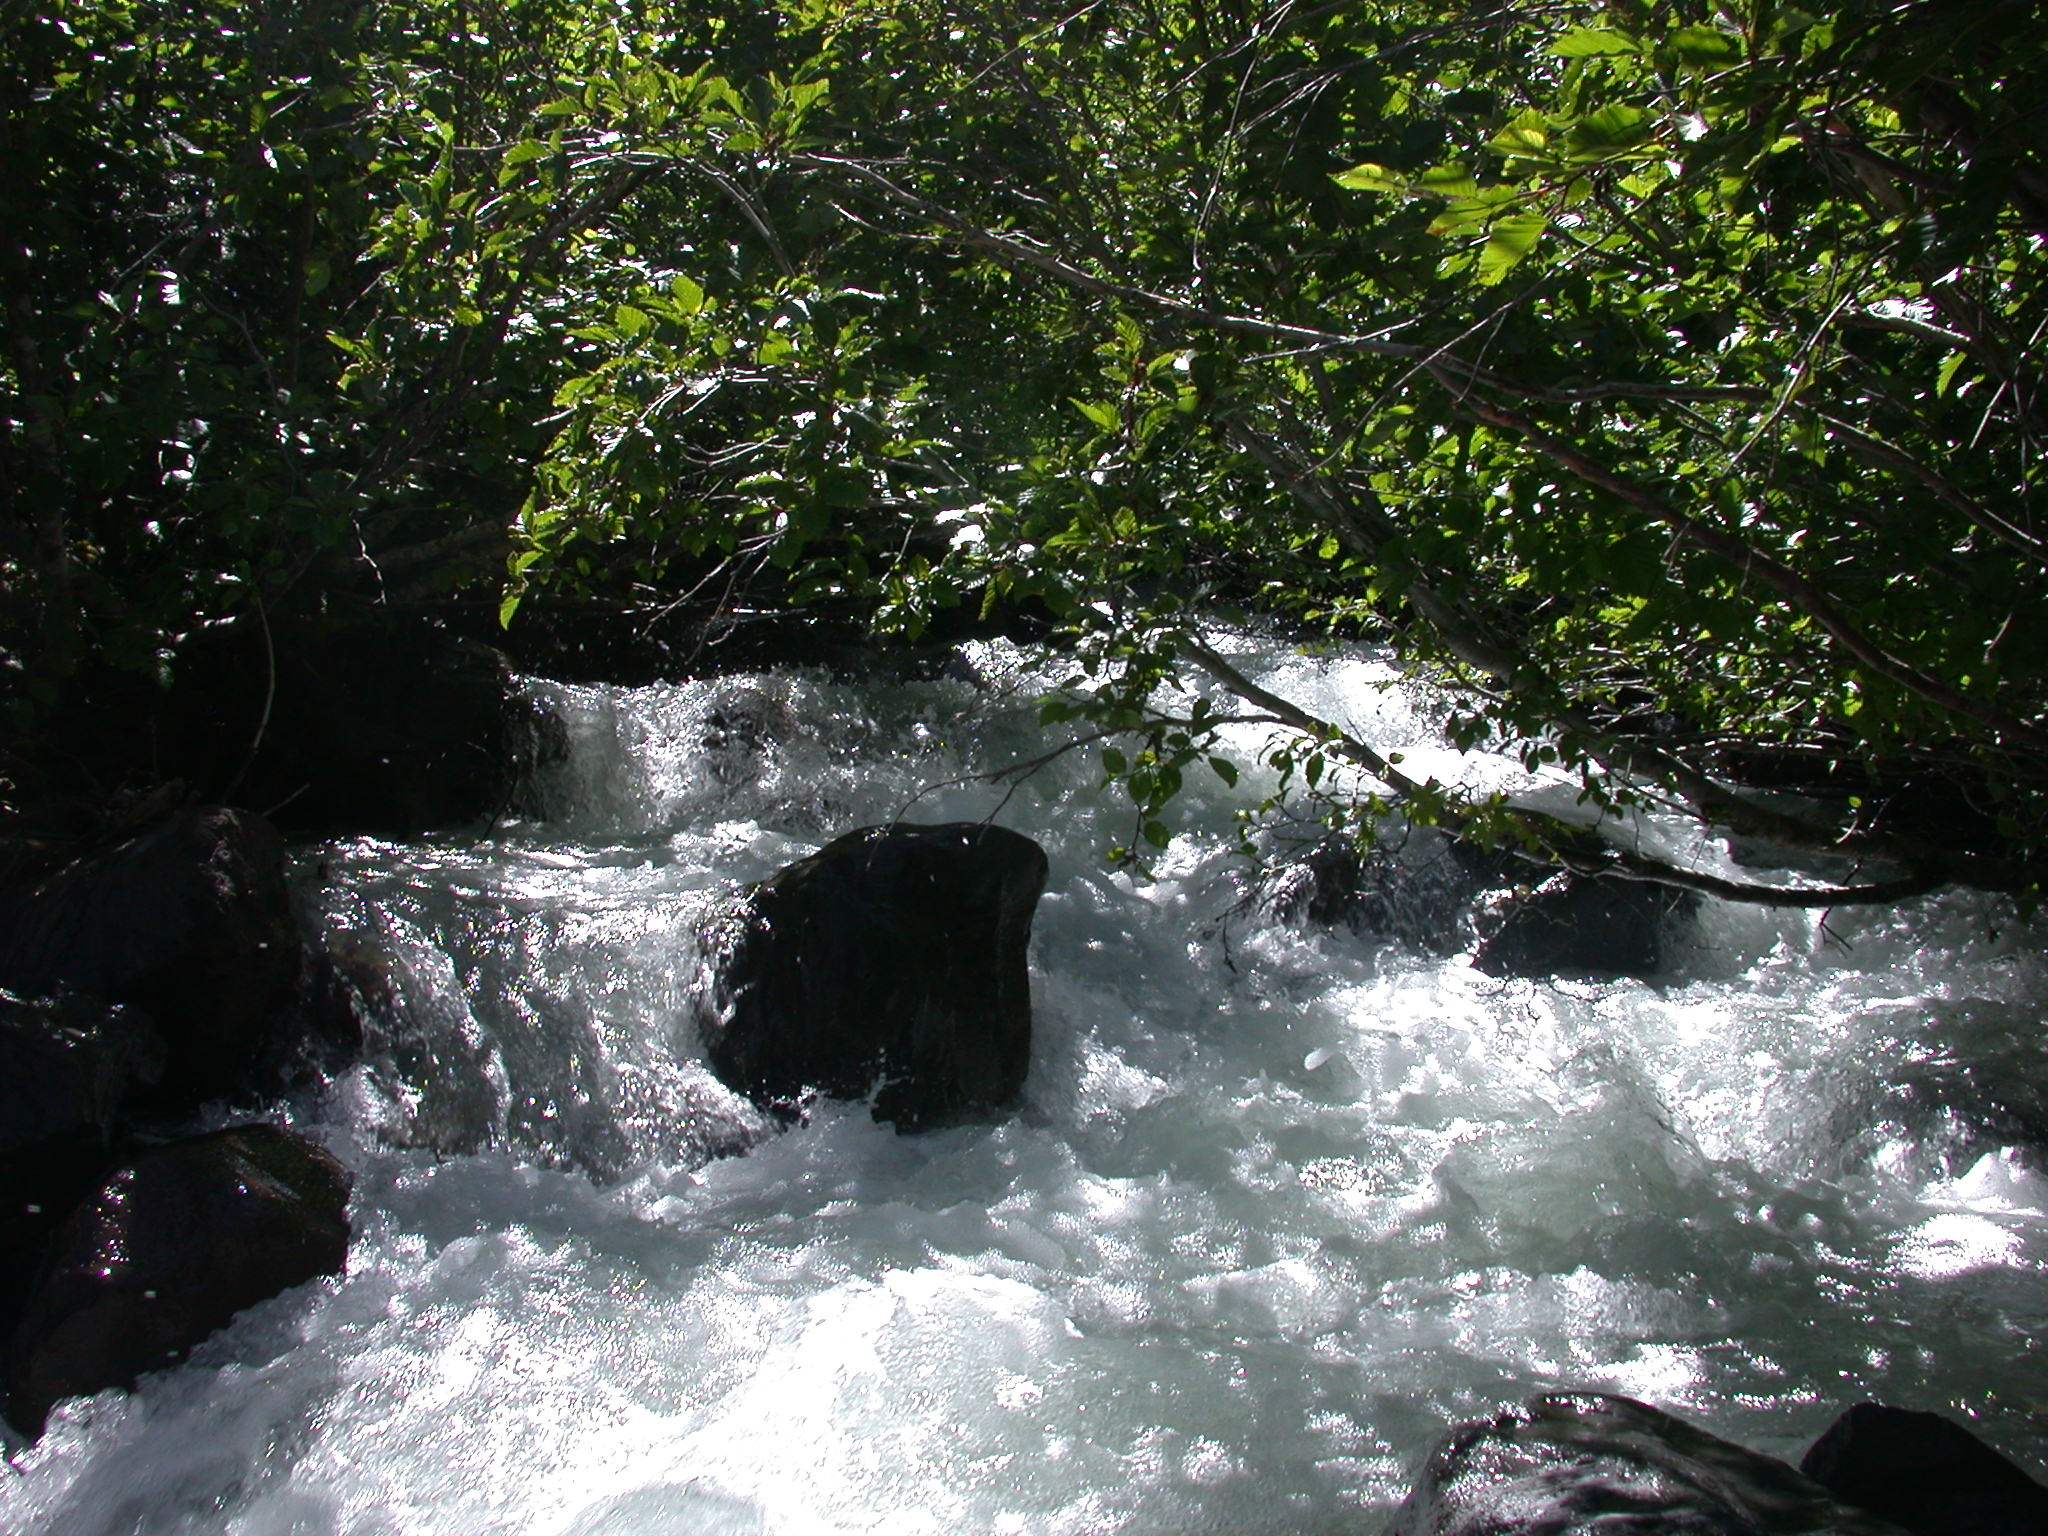 Roaring Stream on Glacier Trail of Mount Rainier